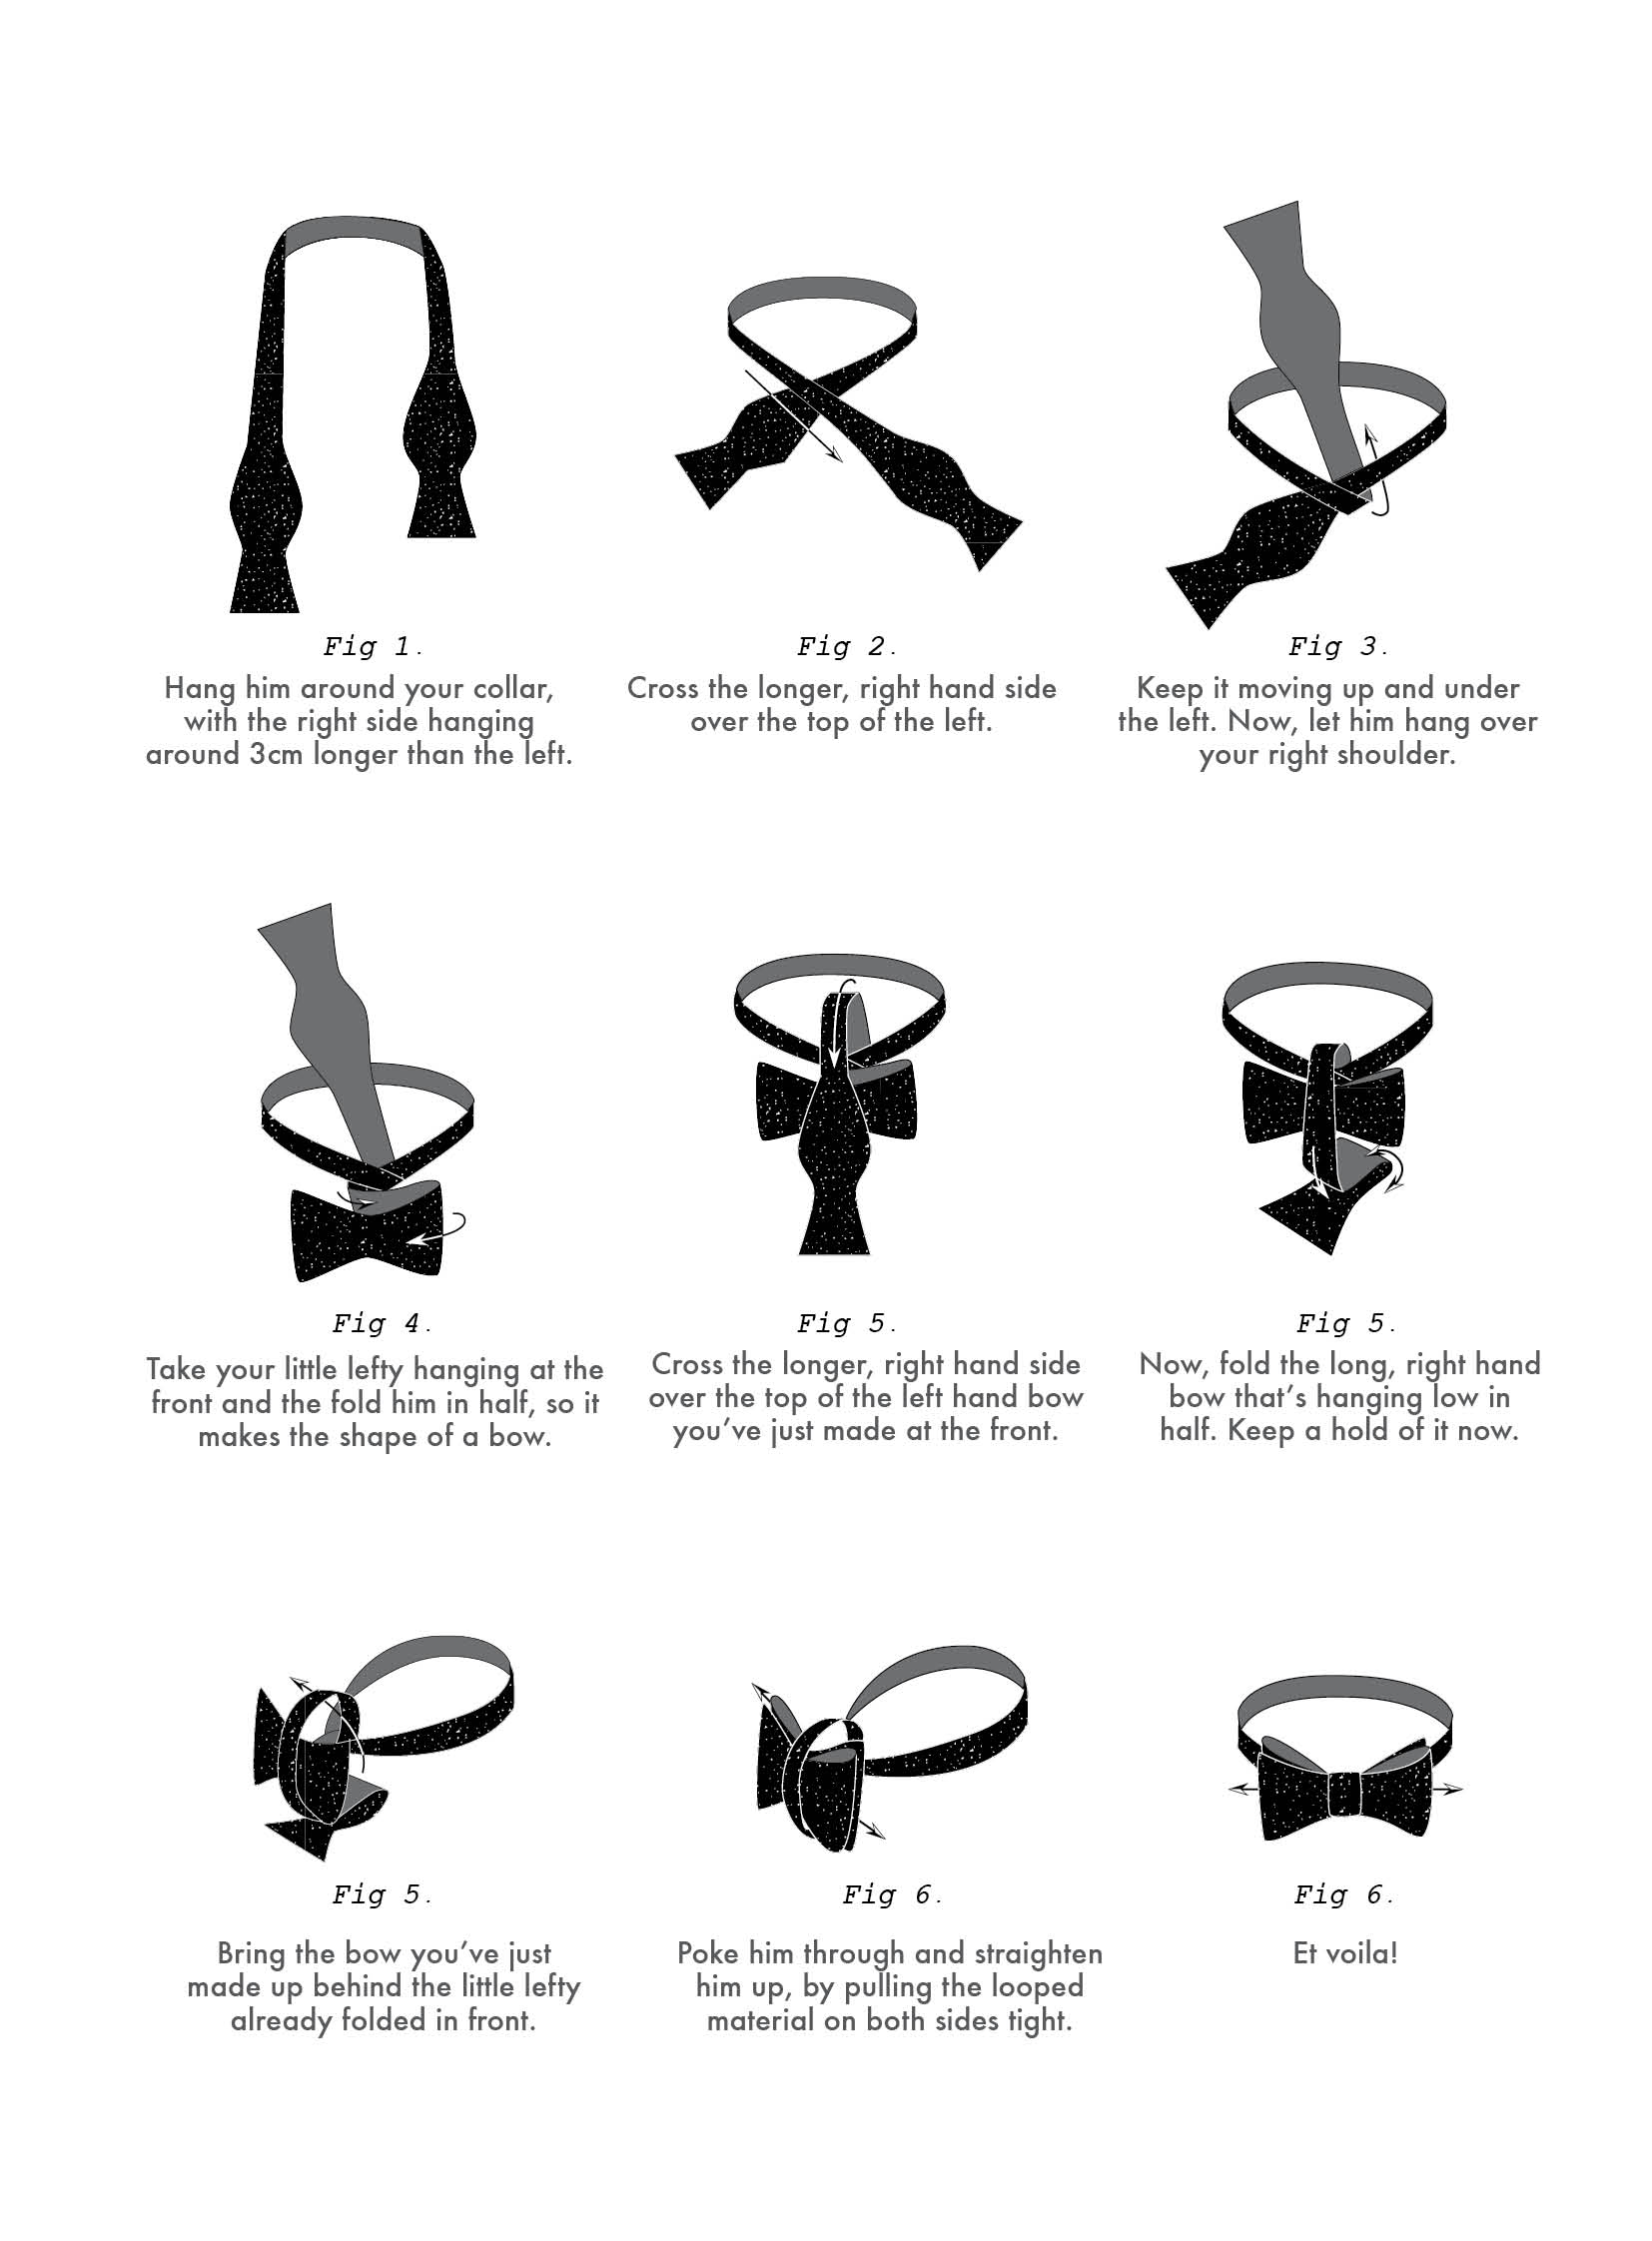 Hot tip:  When you make the first bow (the little lefty at the front), hold your finger behind the bow and in between the folds at your collar. It creates a hole and makes its super simple to push that stubborn righty through! Still can't quiet get the hang of it? Check out the clip below!